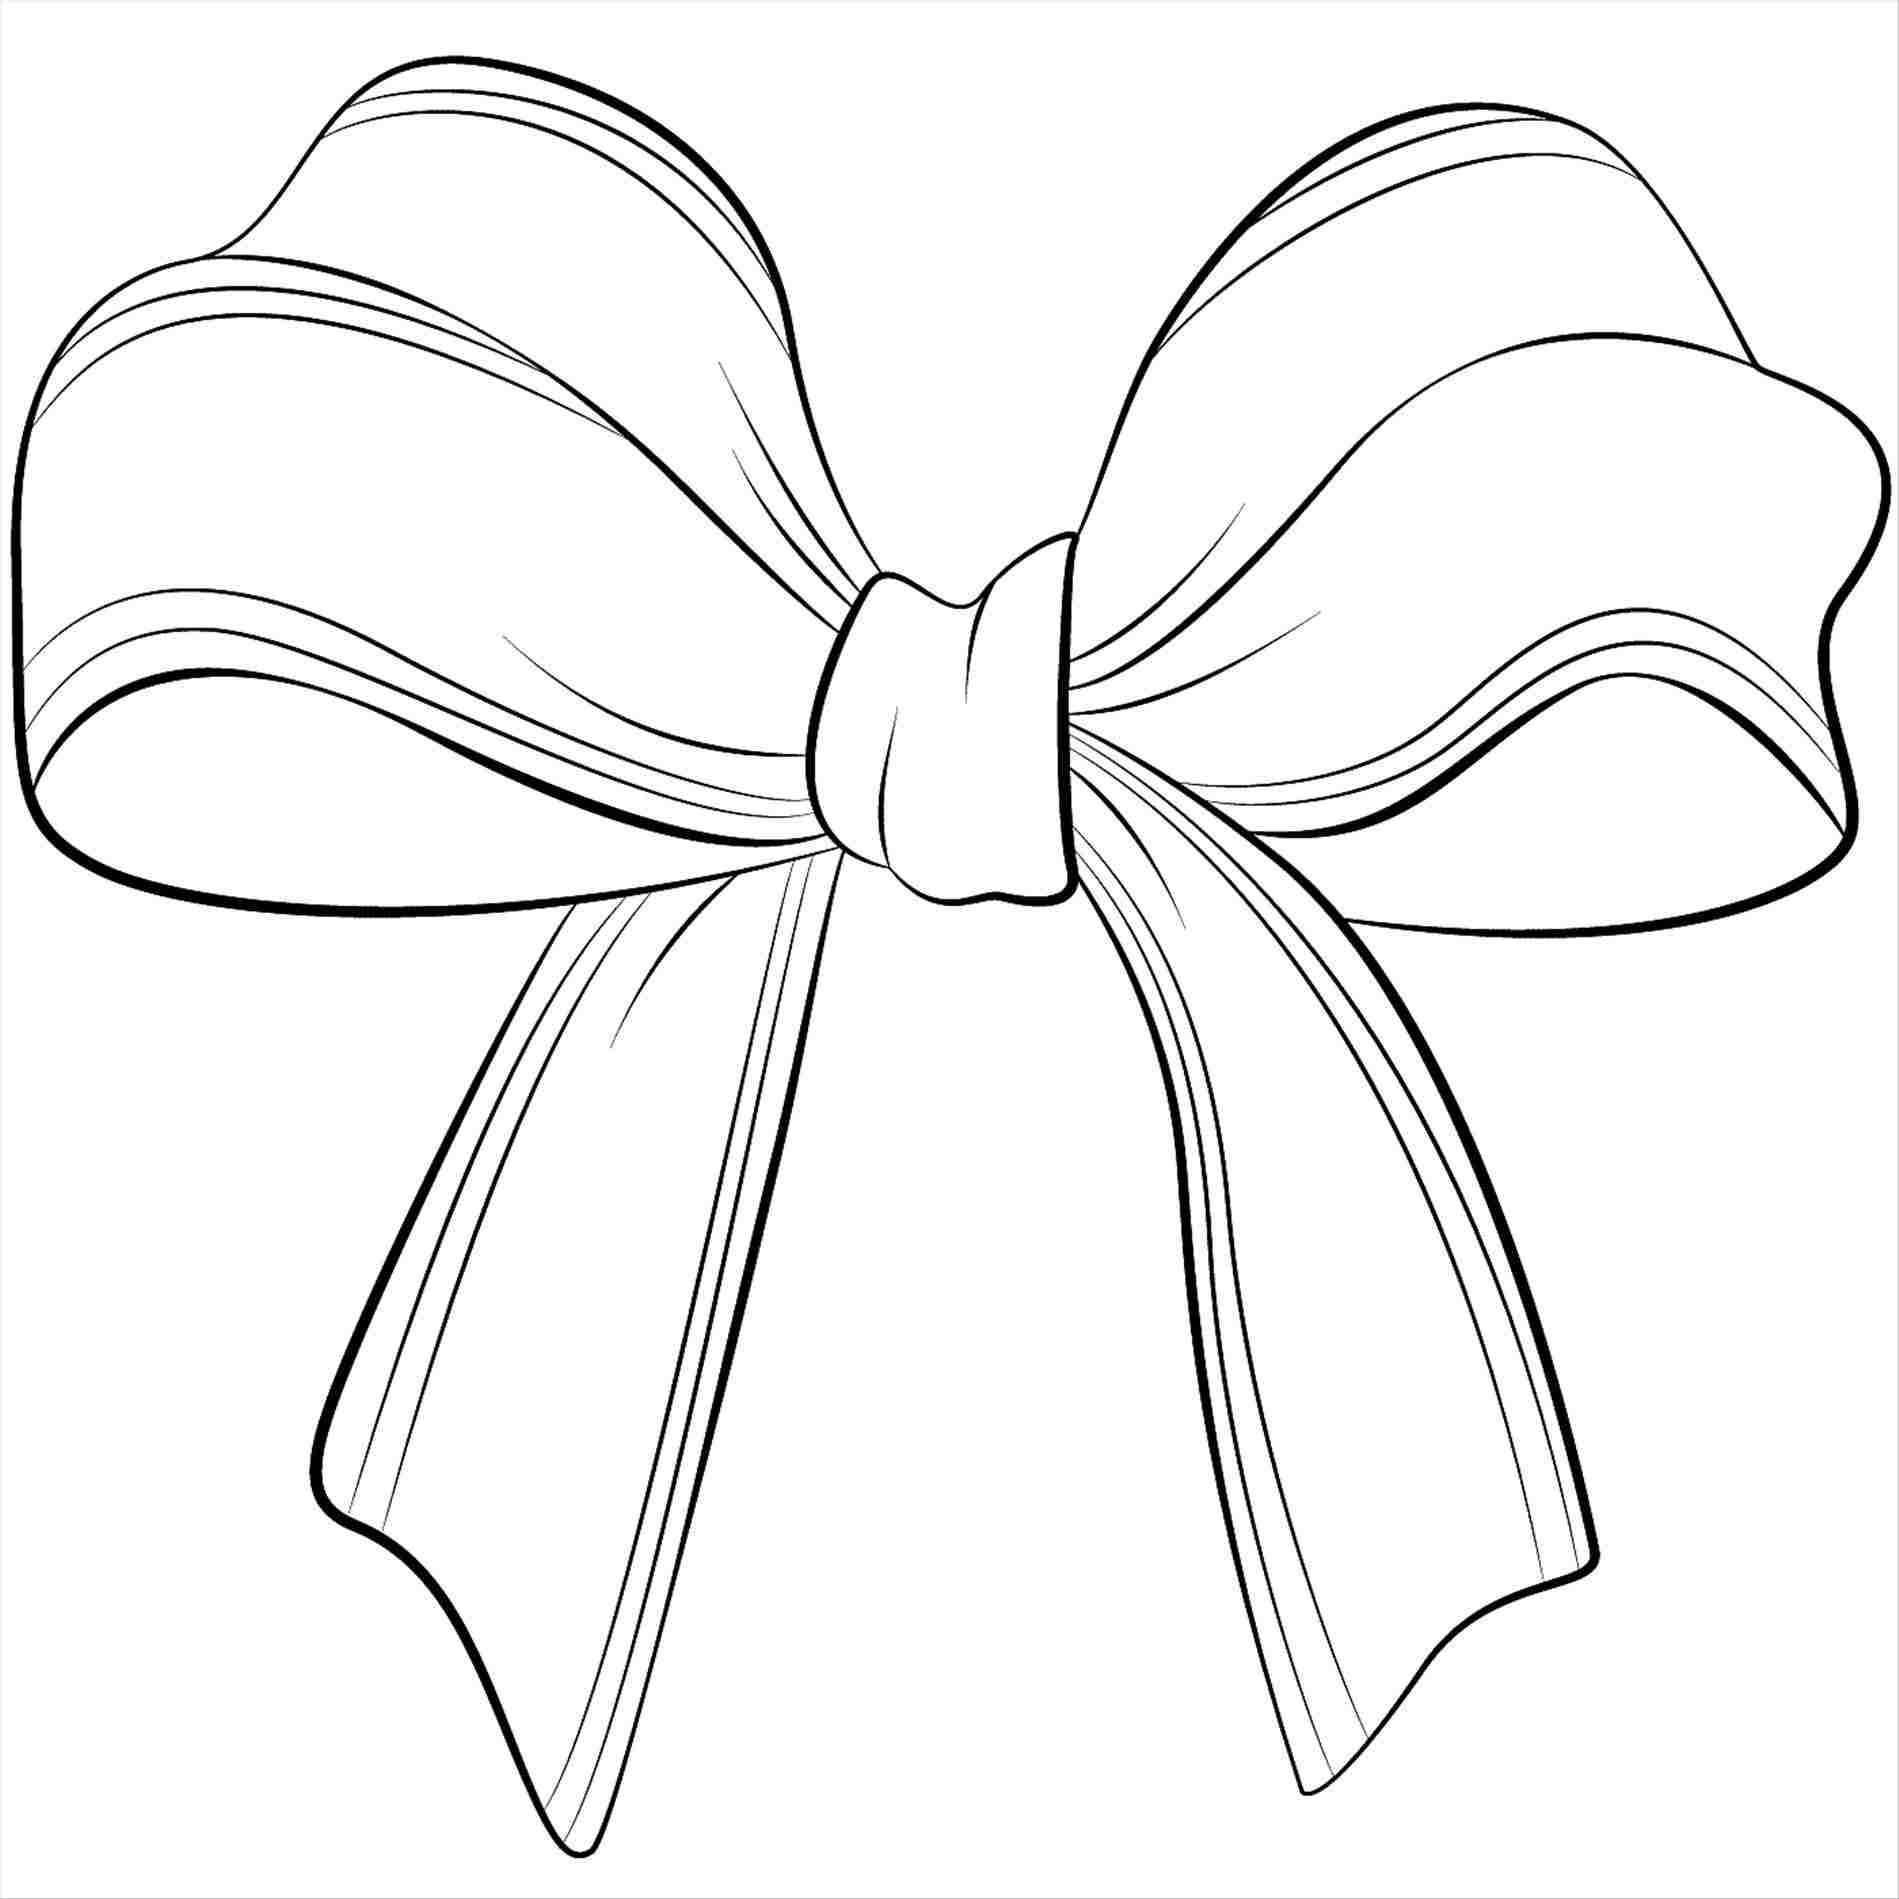 draw a bow bow line drawing at getdrawings free download draw a bow